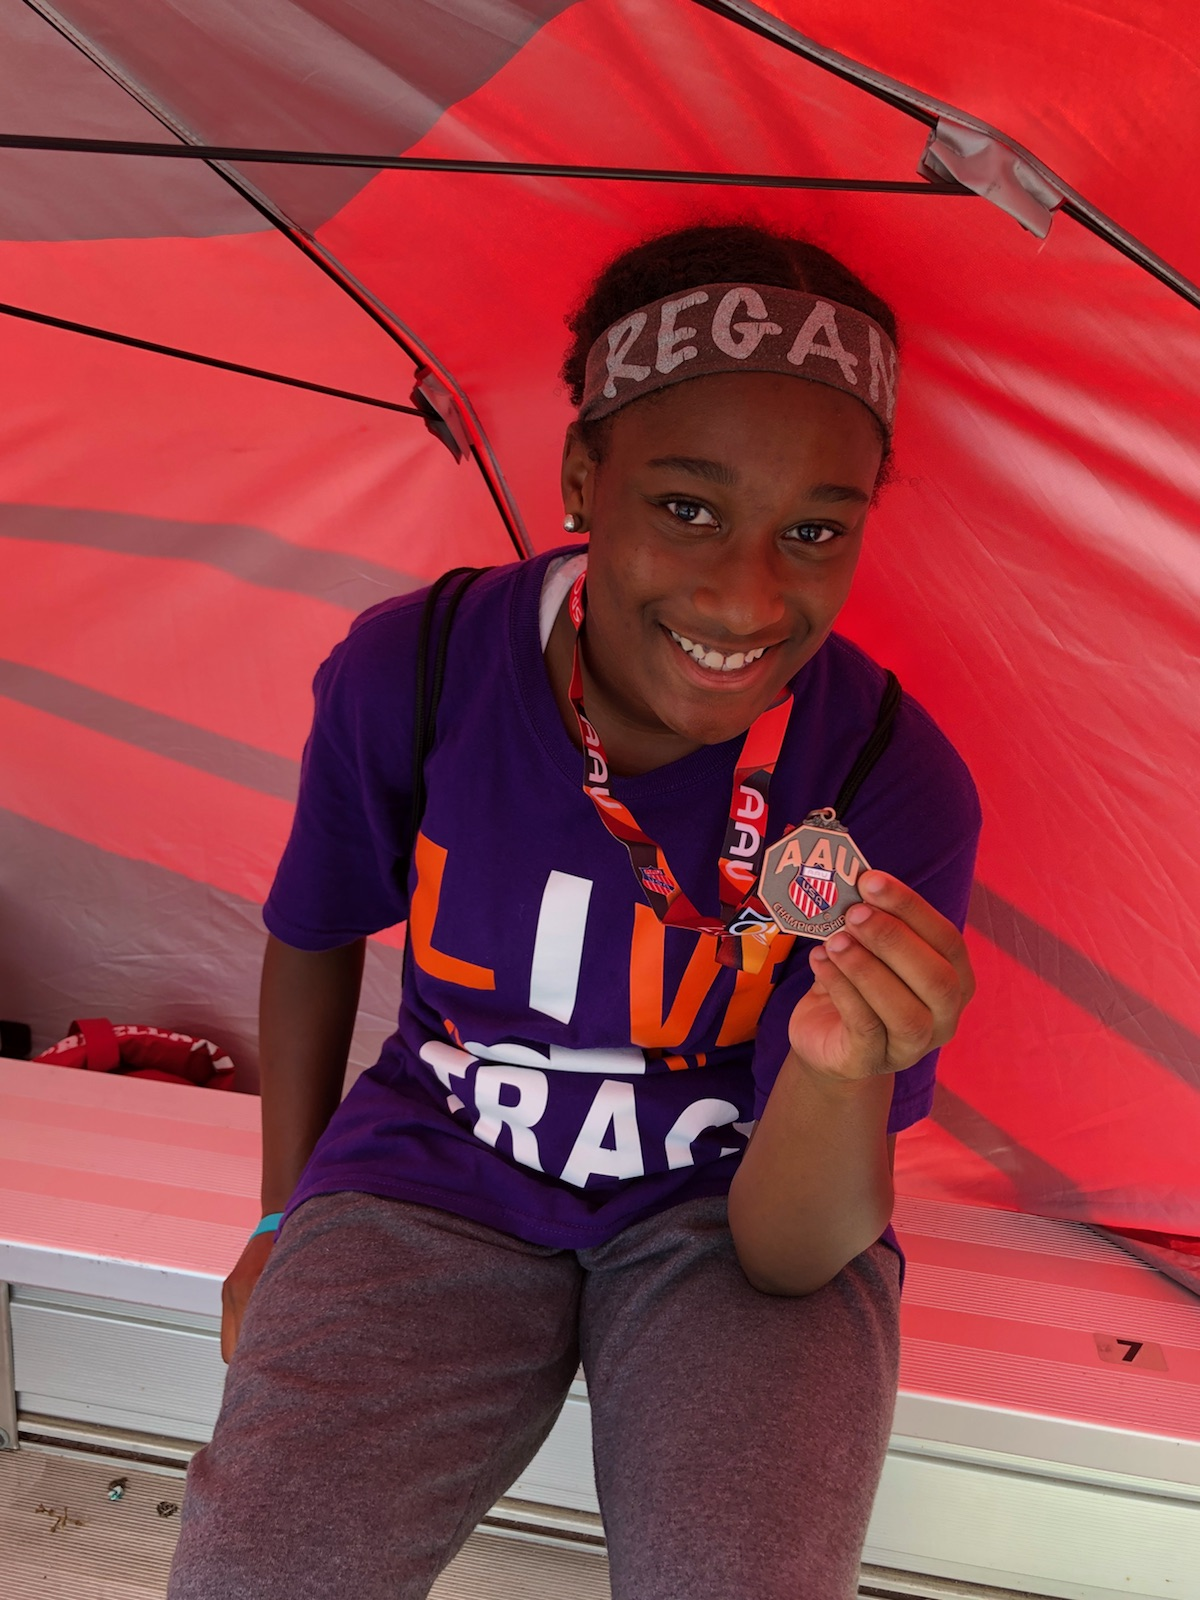 Regan showing off her medal in the  200m hurdles